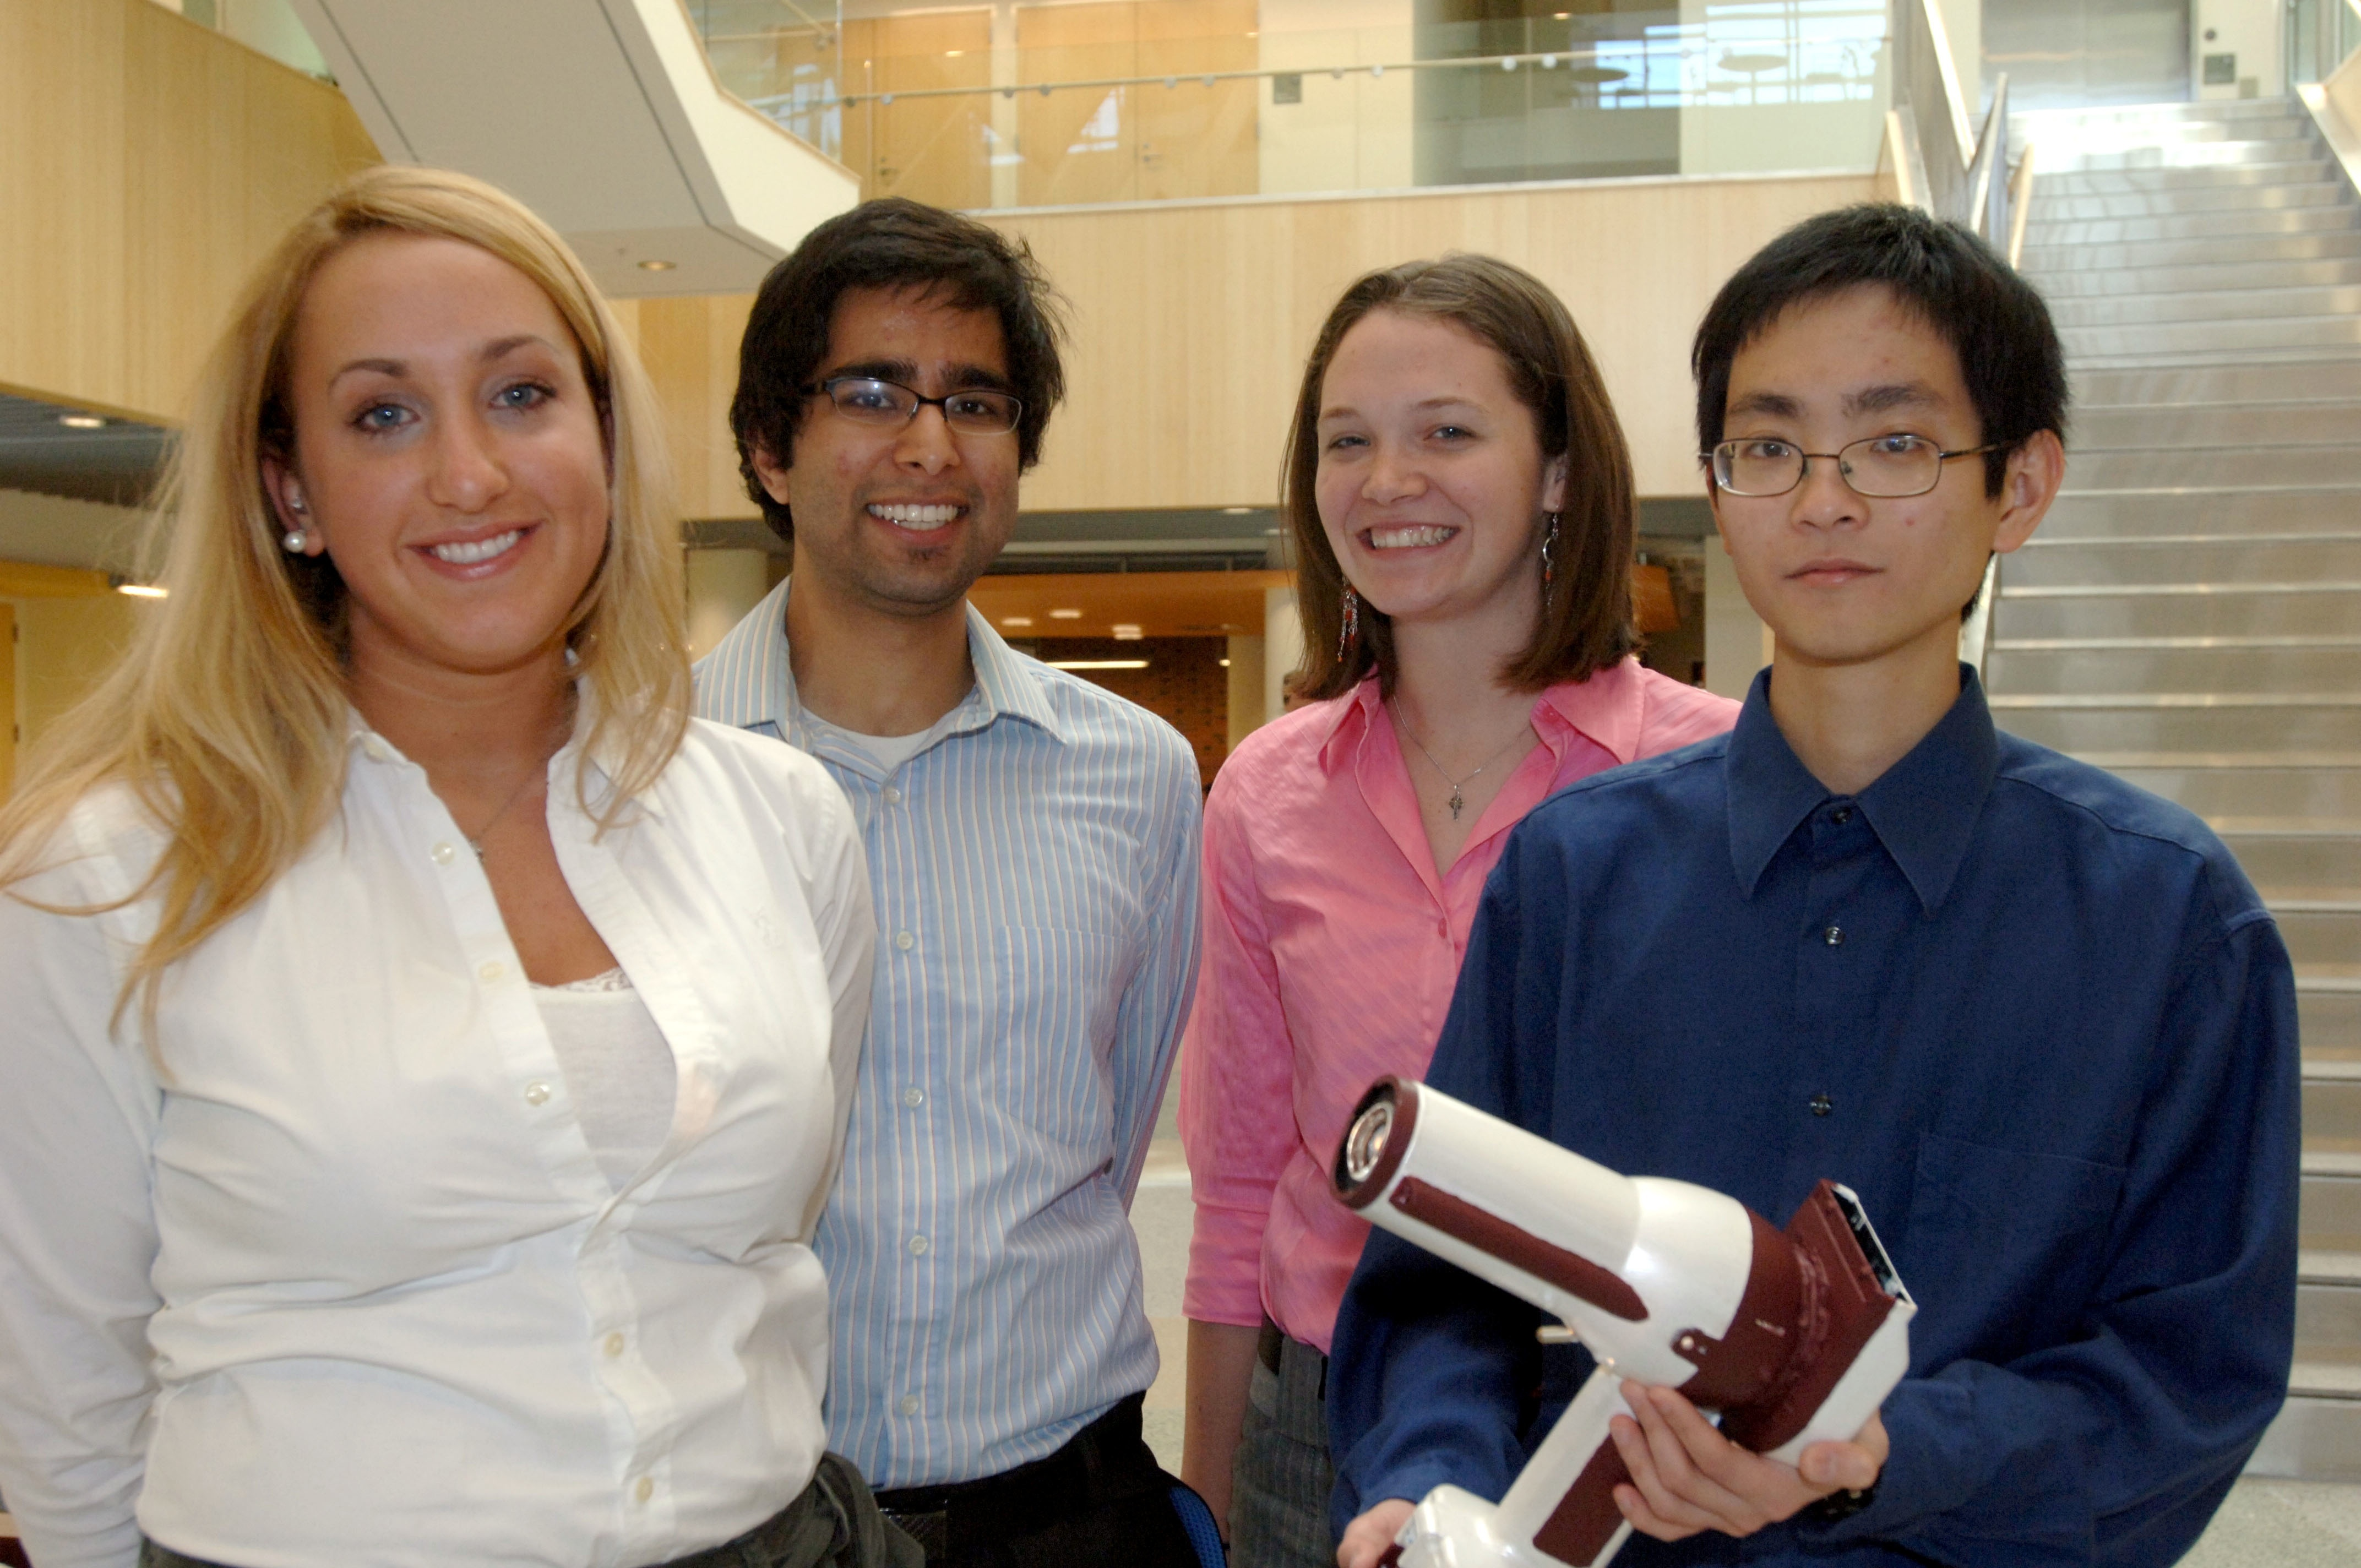 Biomedical Engineering subjects studied in high school